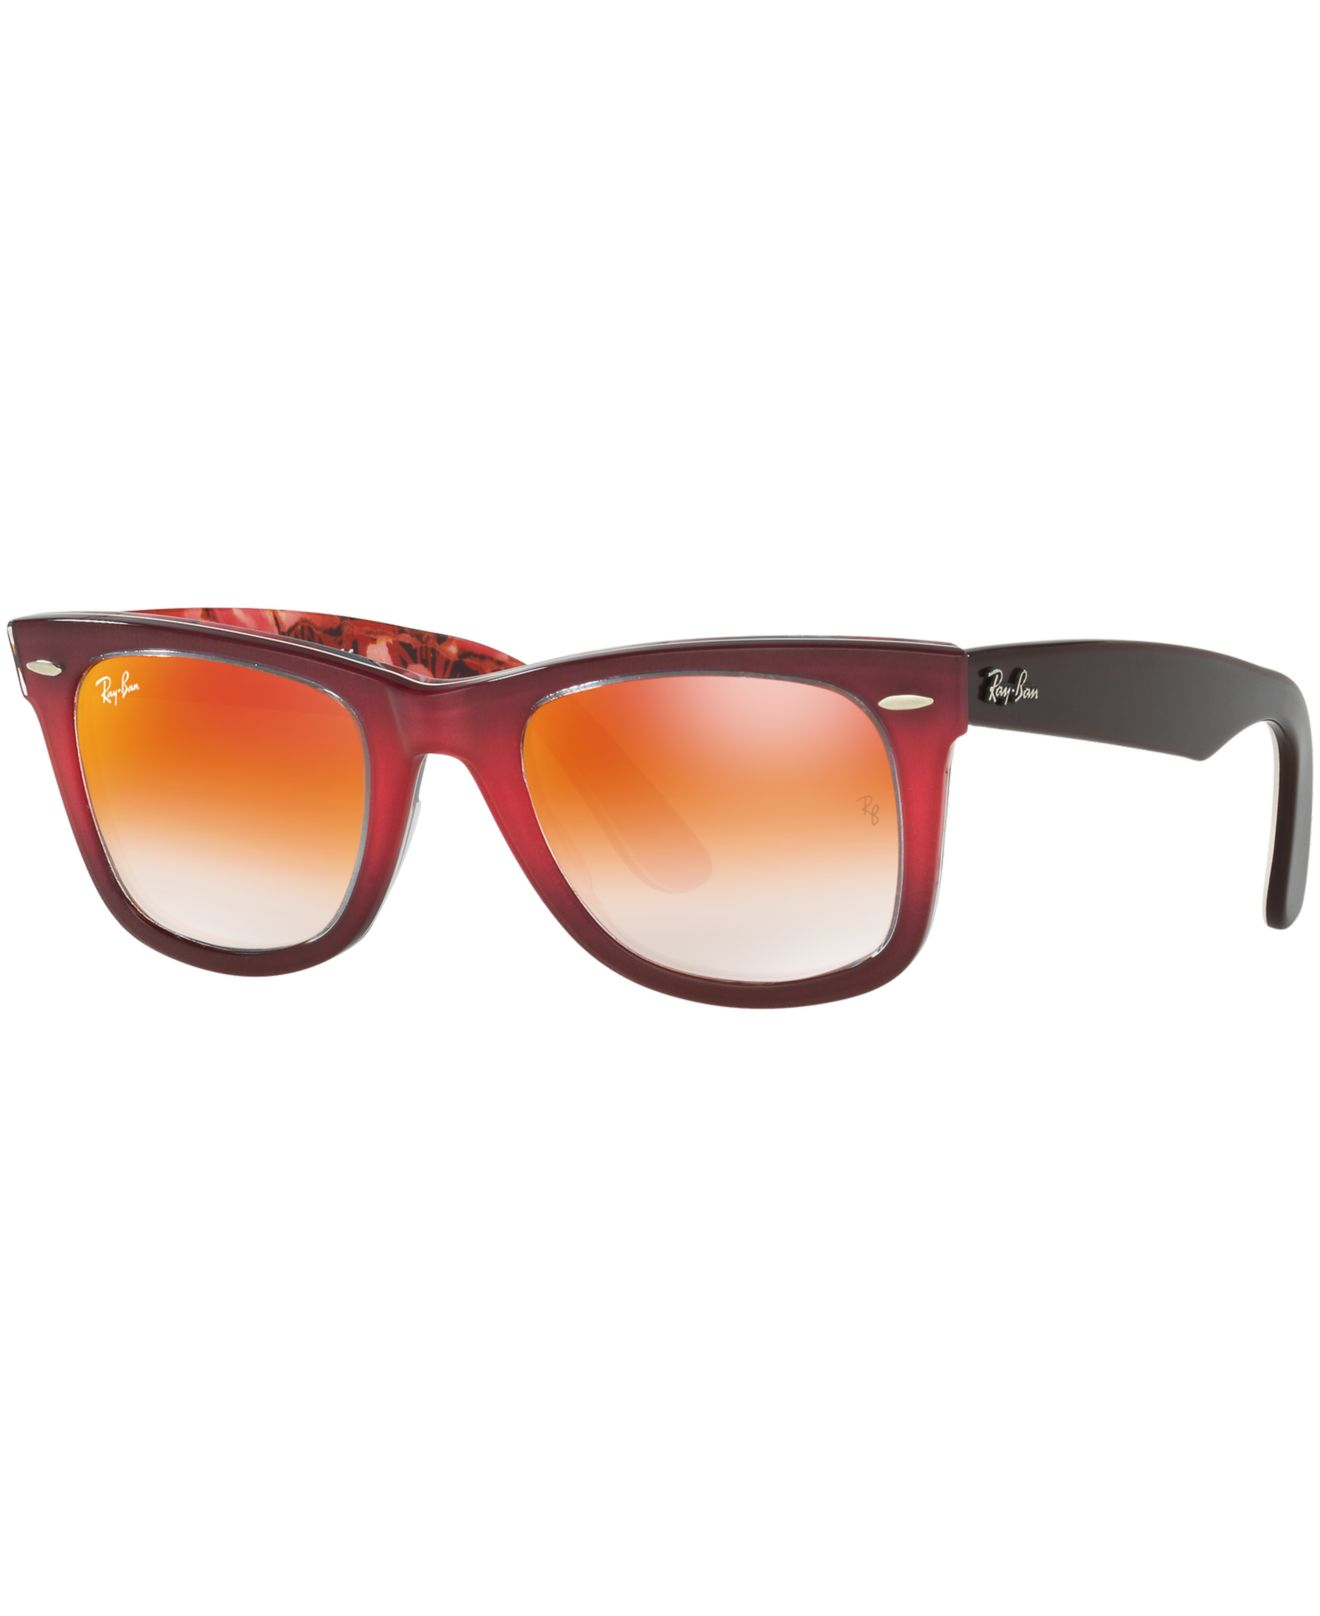 e6e61cc282 Lyst - Ray-Ban Rb2140 Original Wayfarer in Red